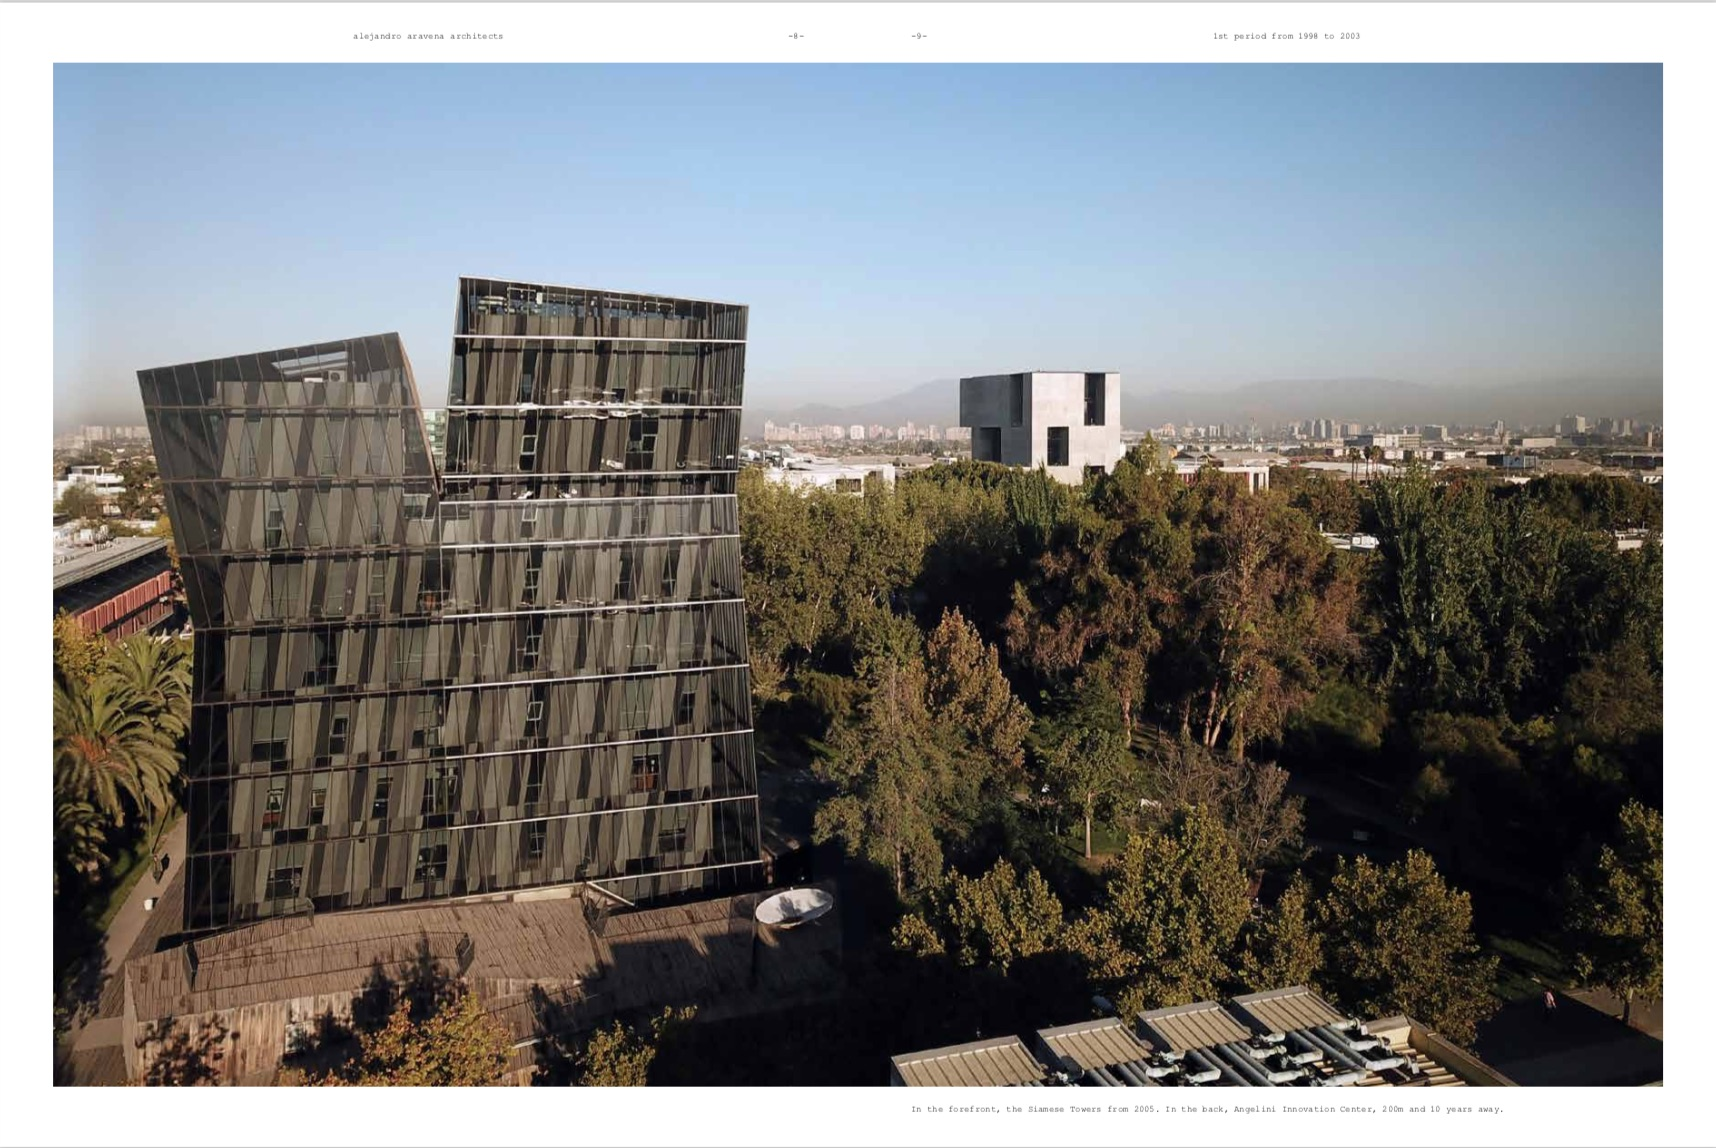 By Alejandro Aravena from Elemental copyright Phaidon 2018